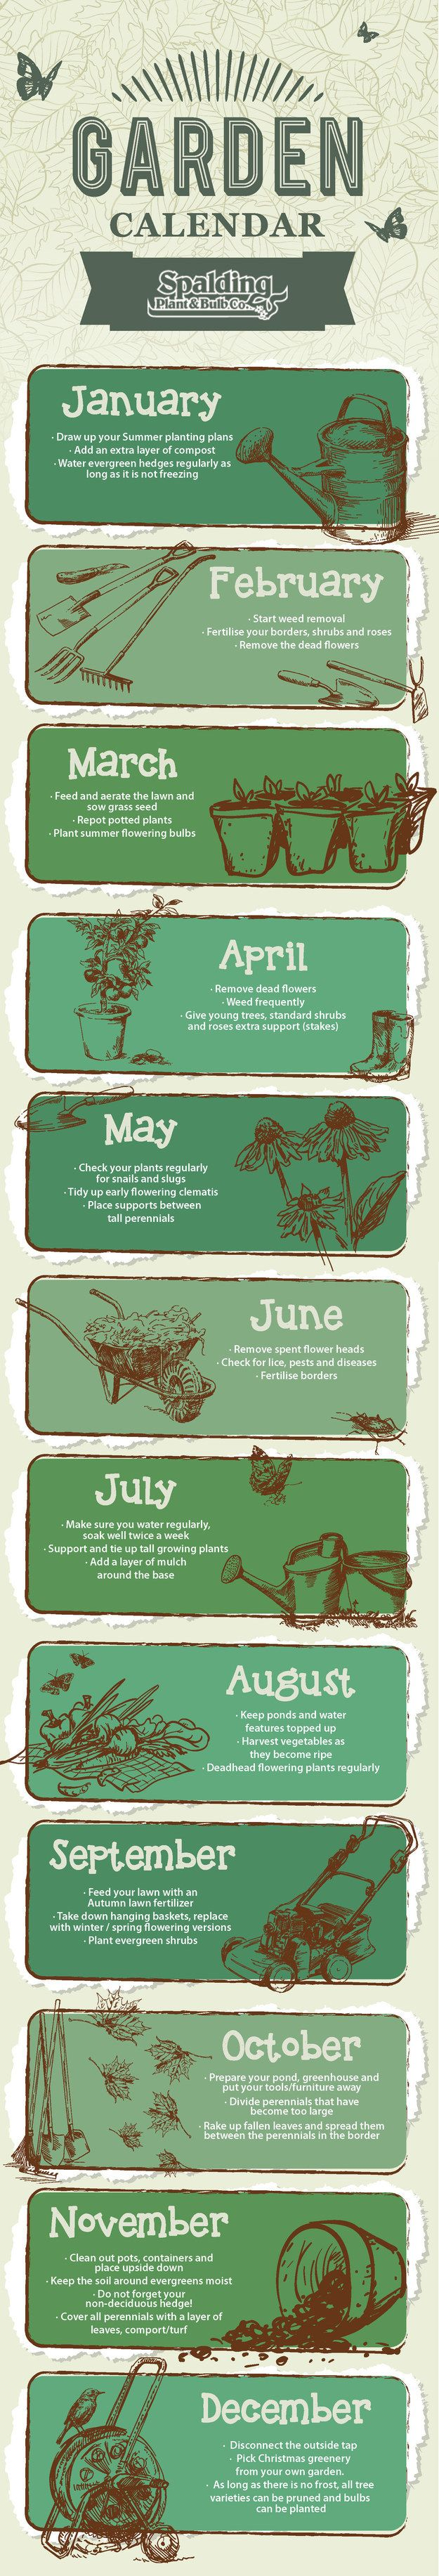 There's always something that needs to be done in a garden: Here's a month-by-month guide to what you should be doing from the Spalding Plant and Bulb Company.